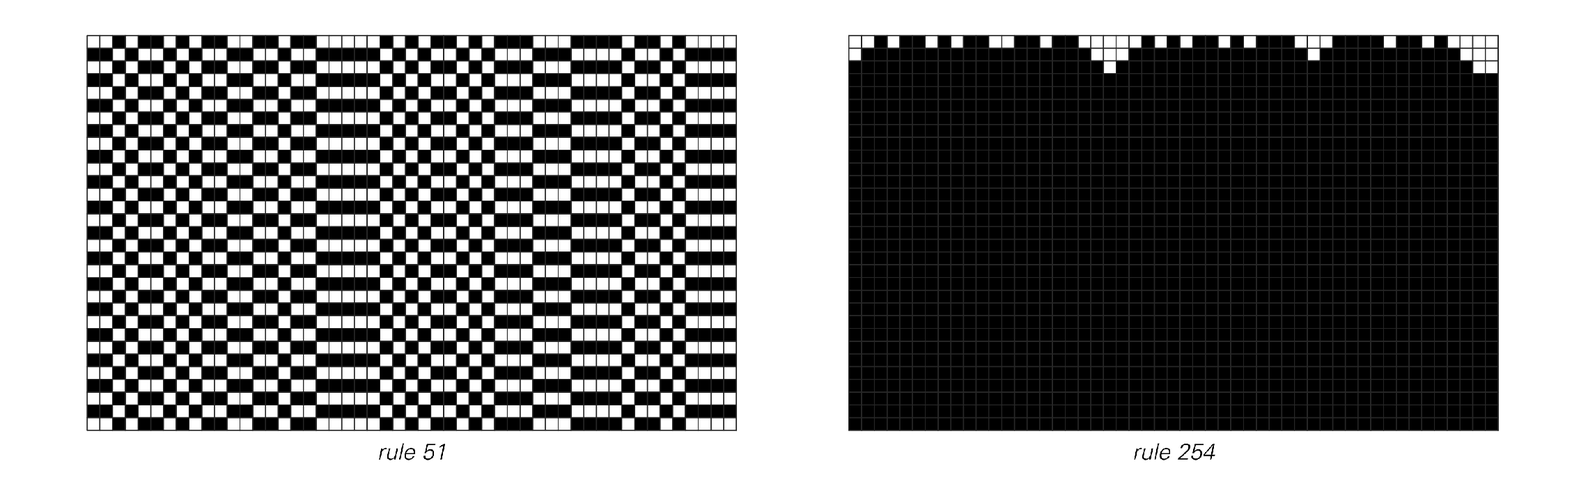 Examples of cellular automata that are and are not reversible